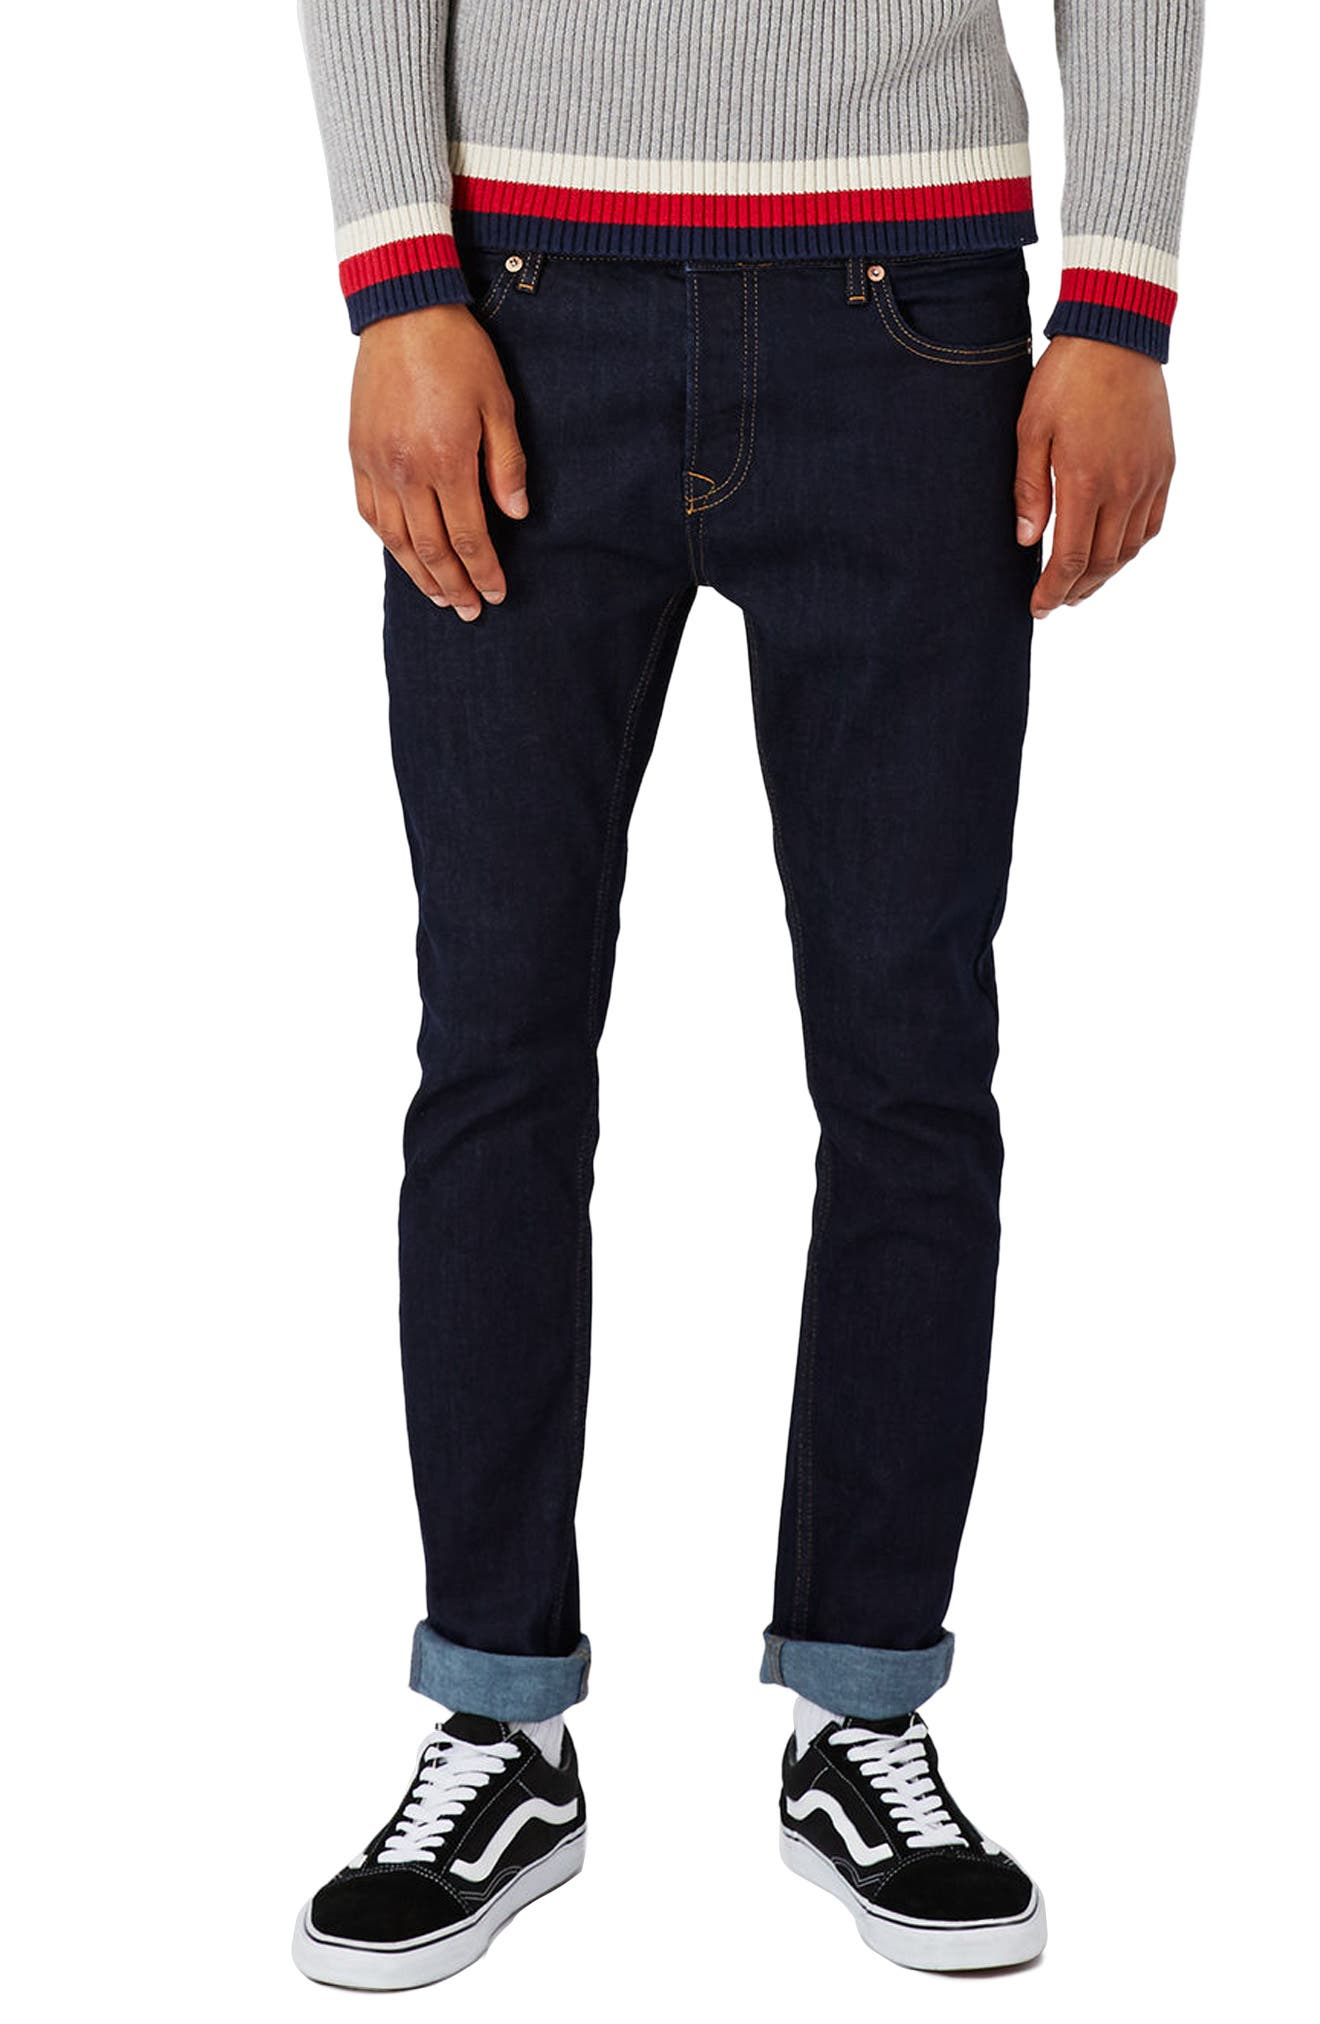 Stretch Skinny Fit Raw Denim Jeans,                             Main thumbnail 1, color,                             Blue